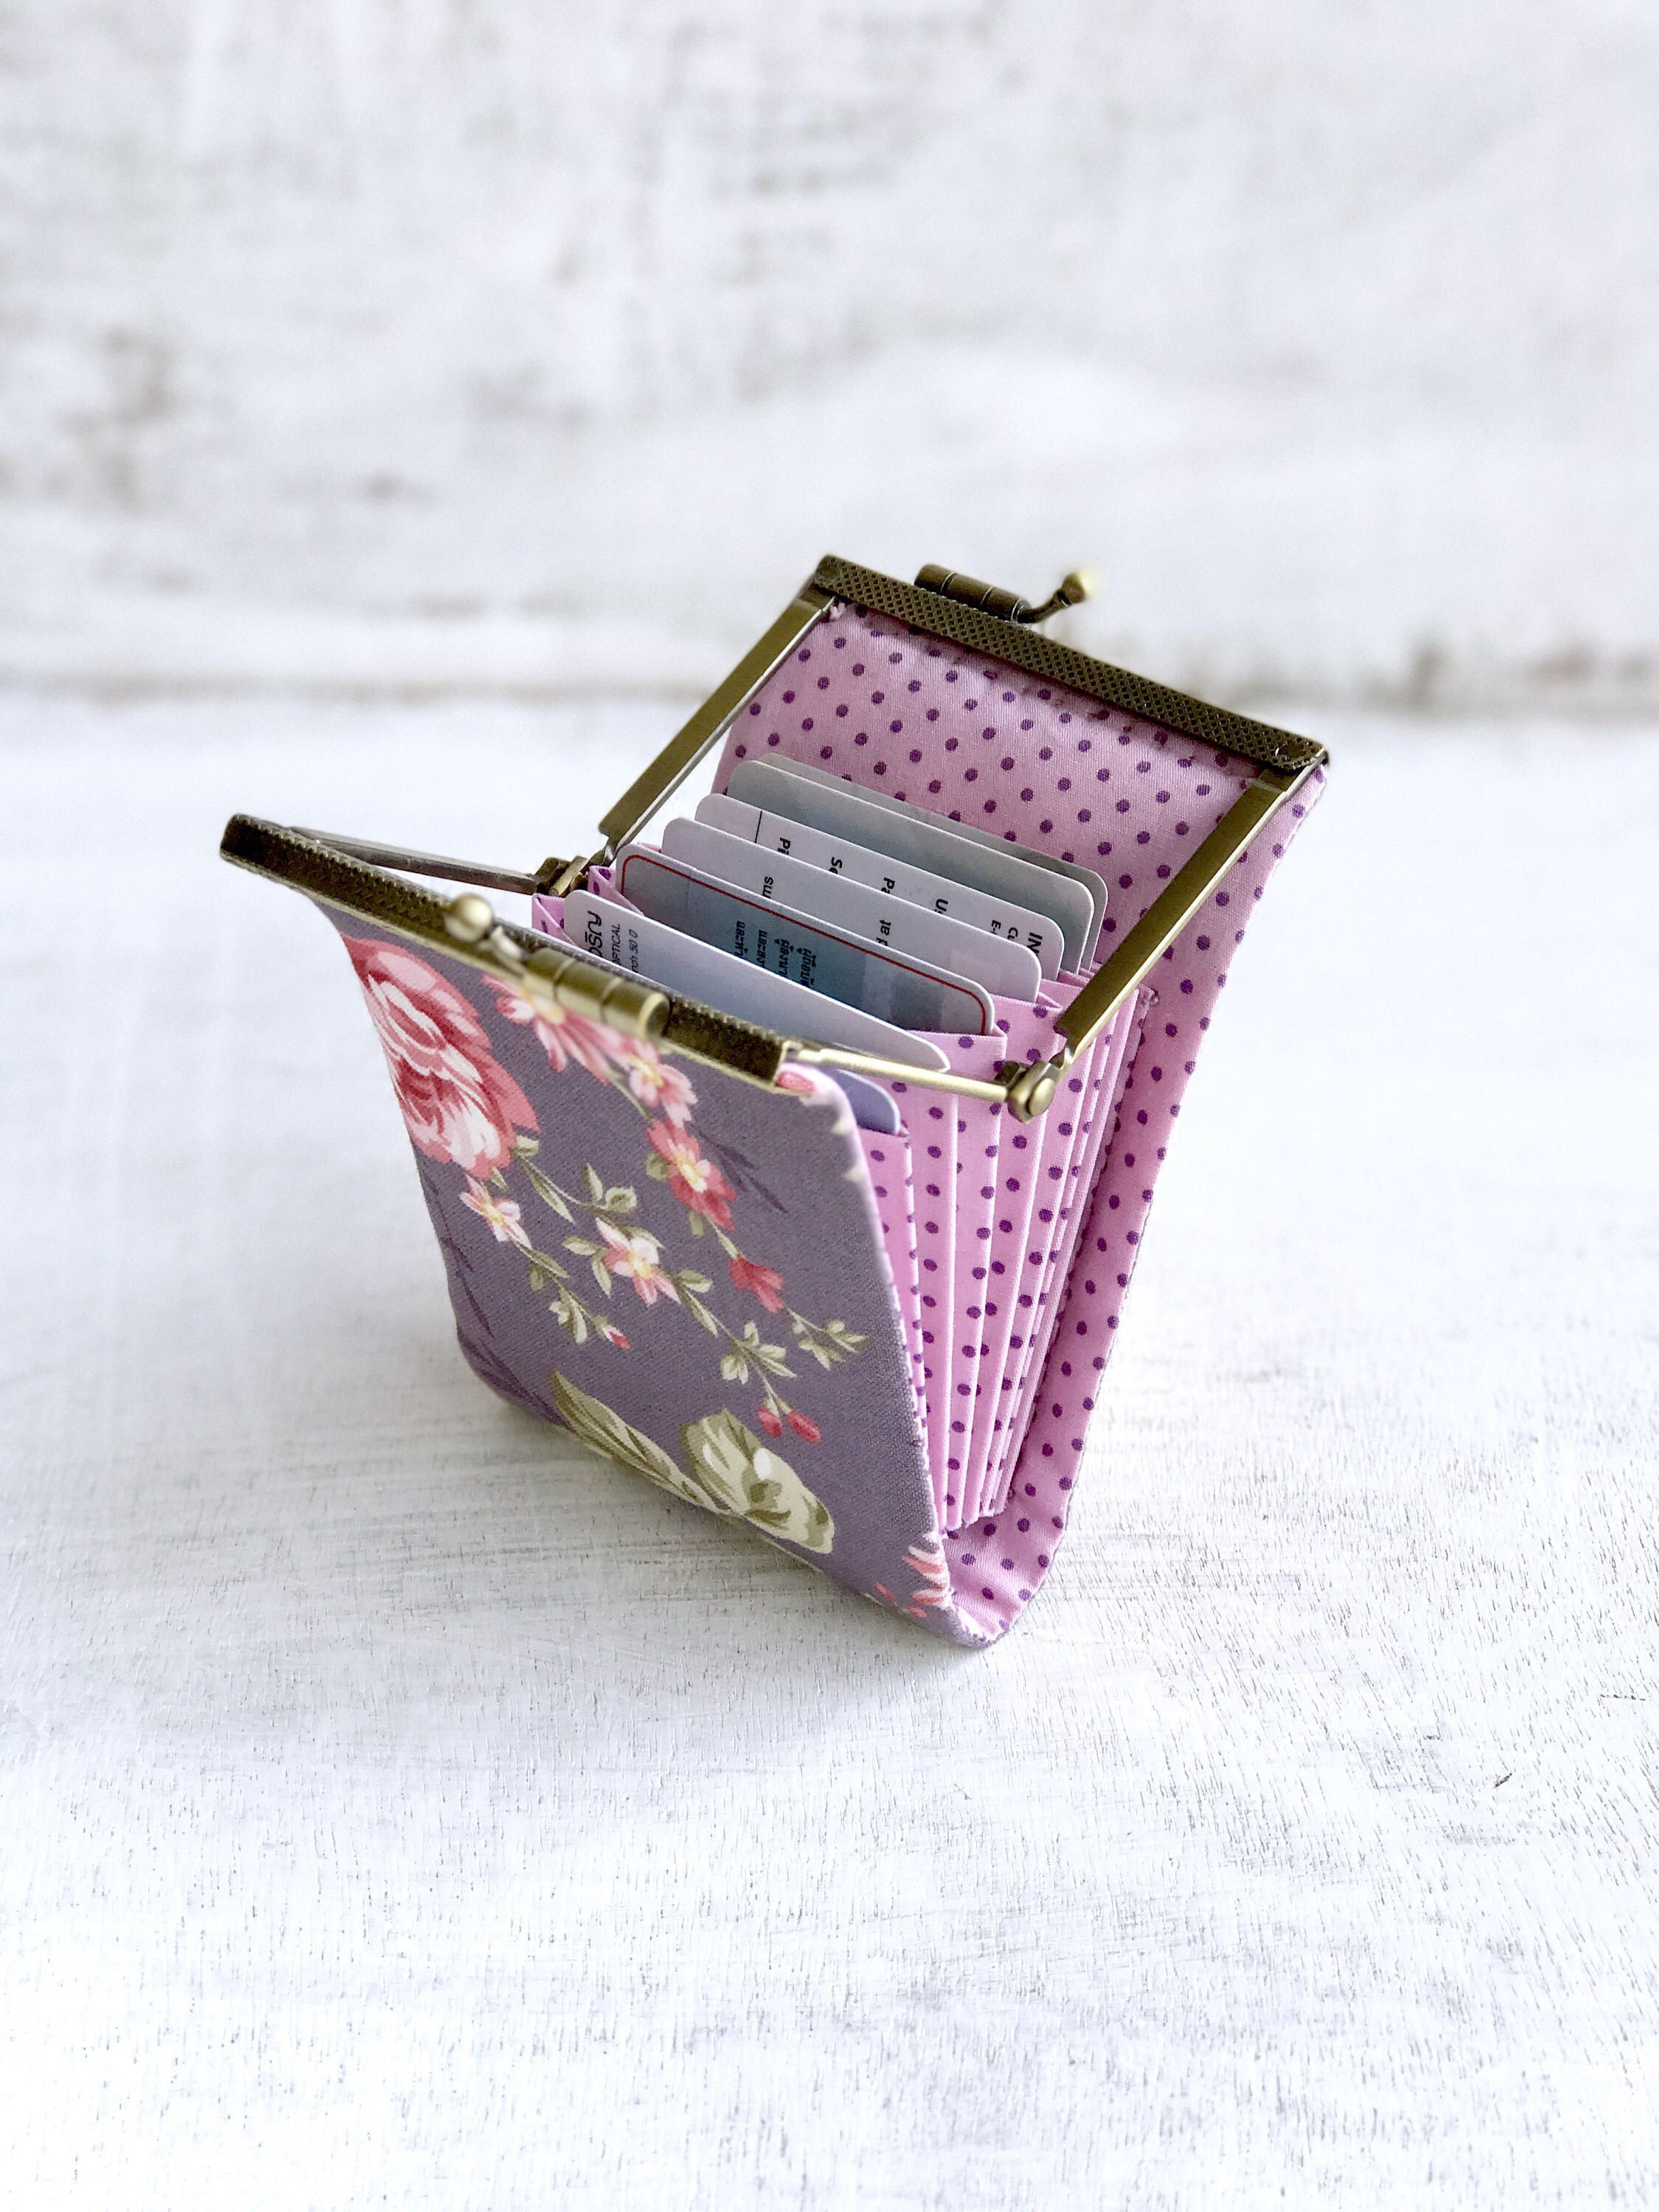 Floral card case womens credit card wallet card holder wallet floral card case womens credit card wallet card holder wallet fabric card case kiss clasp frame purse card organizer colourmoves Images